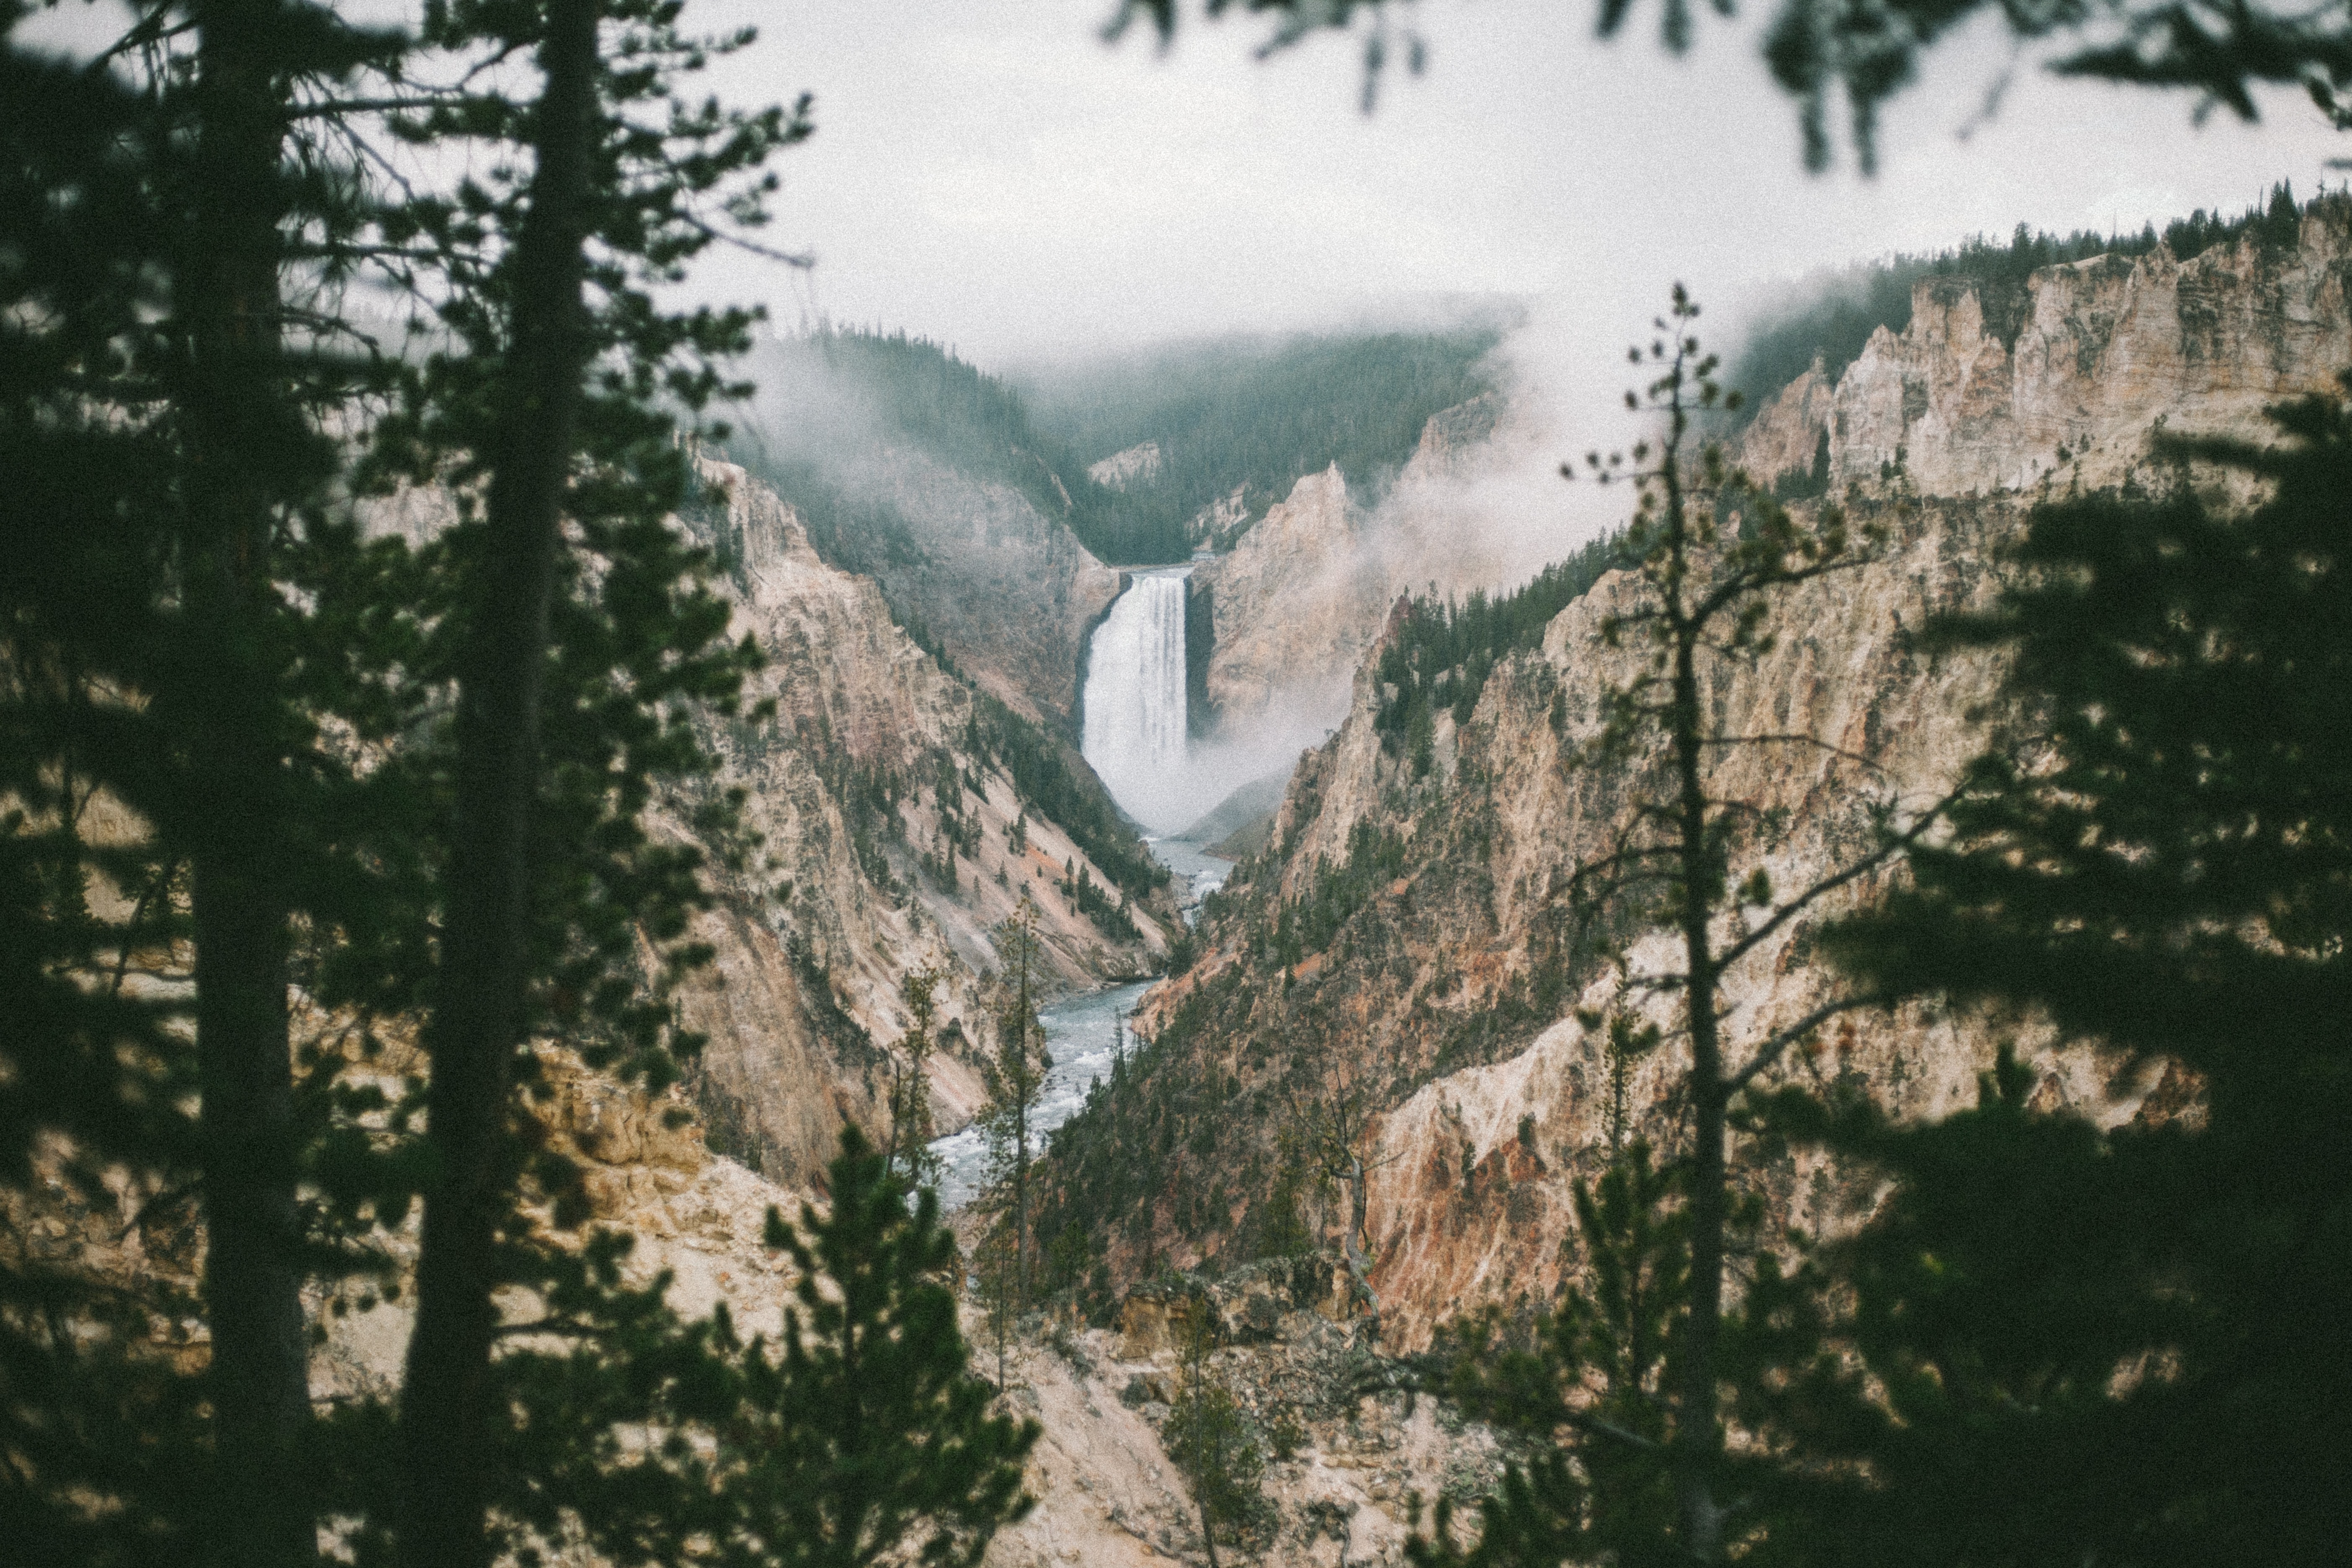 waterfalls and mountain view